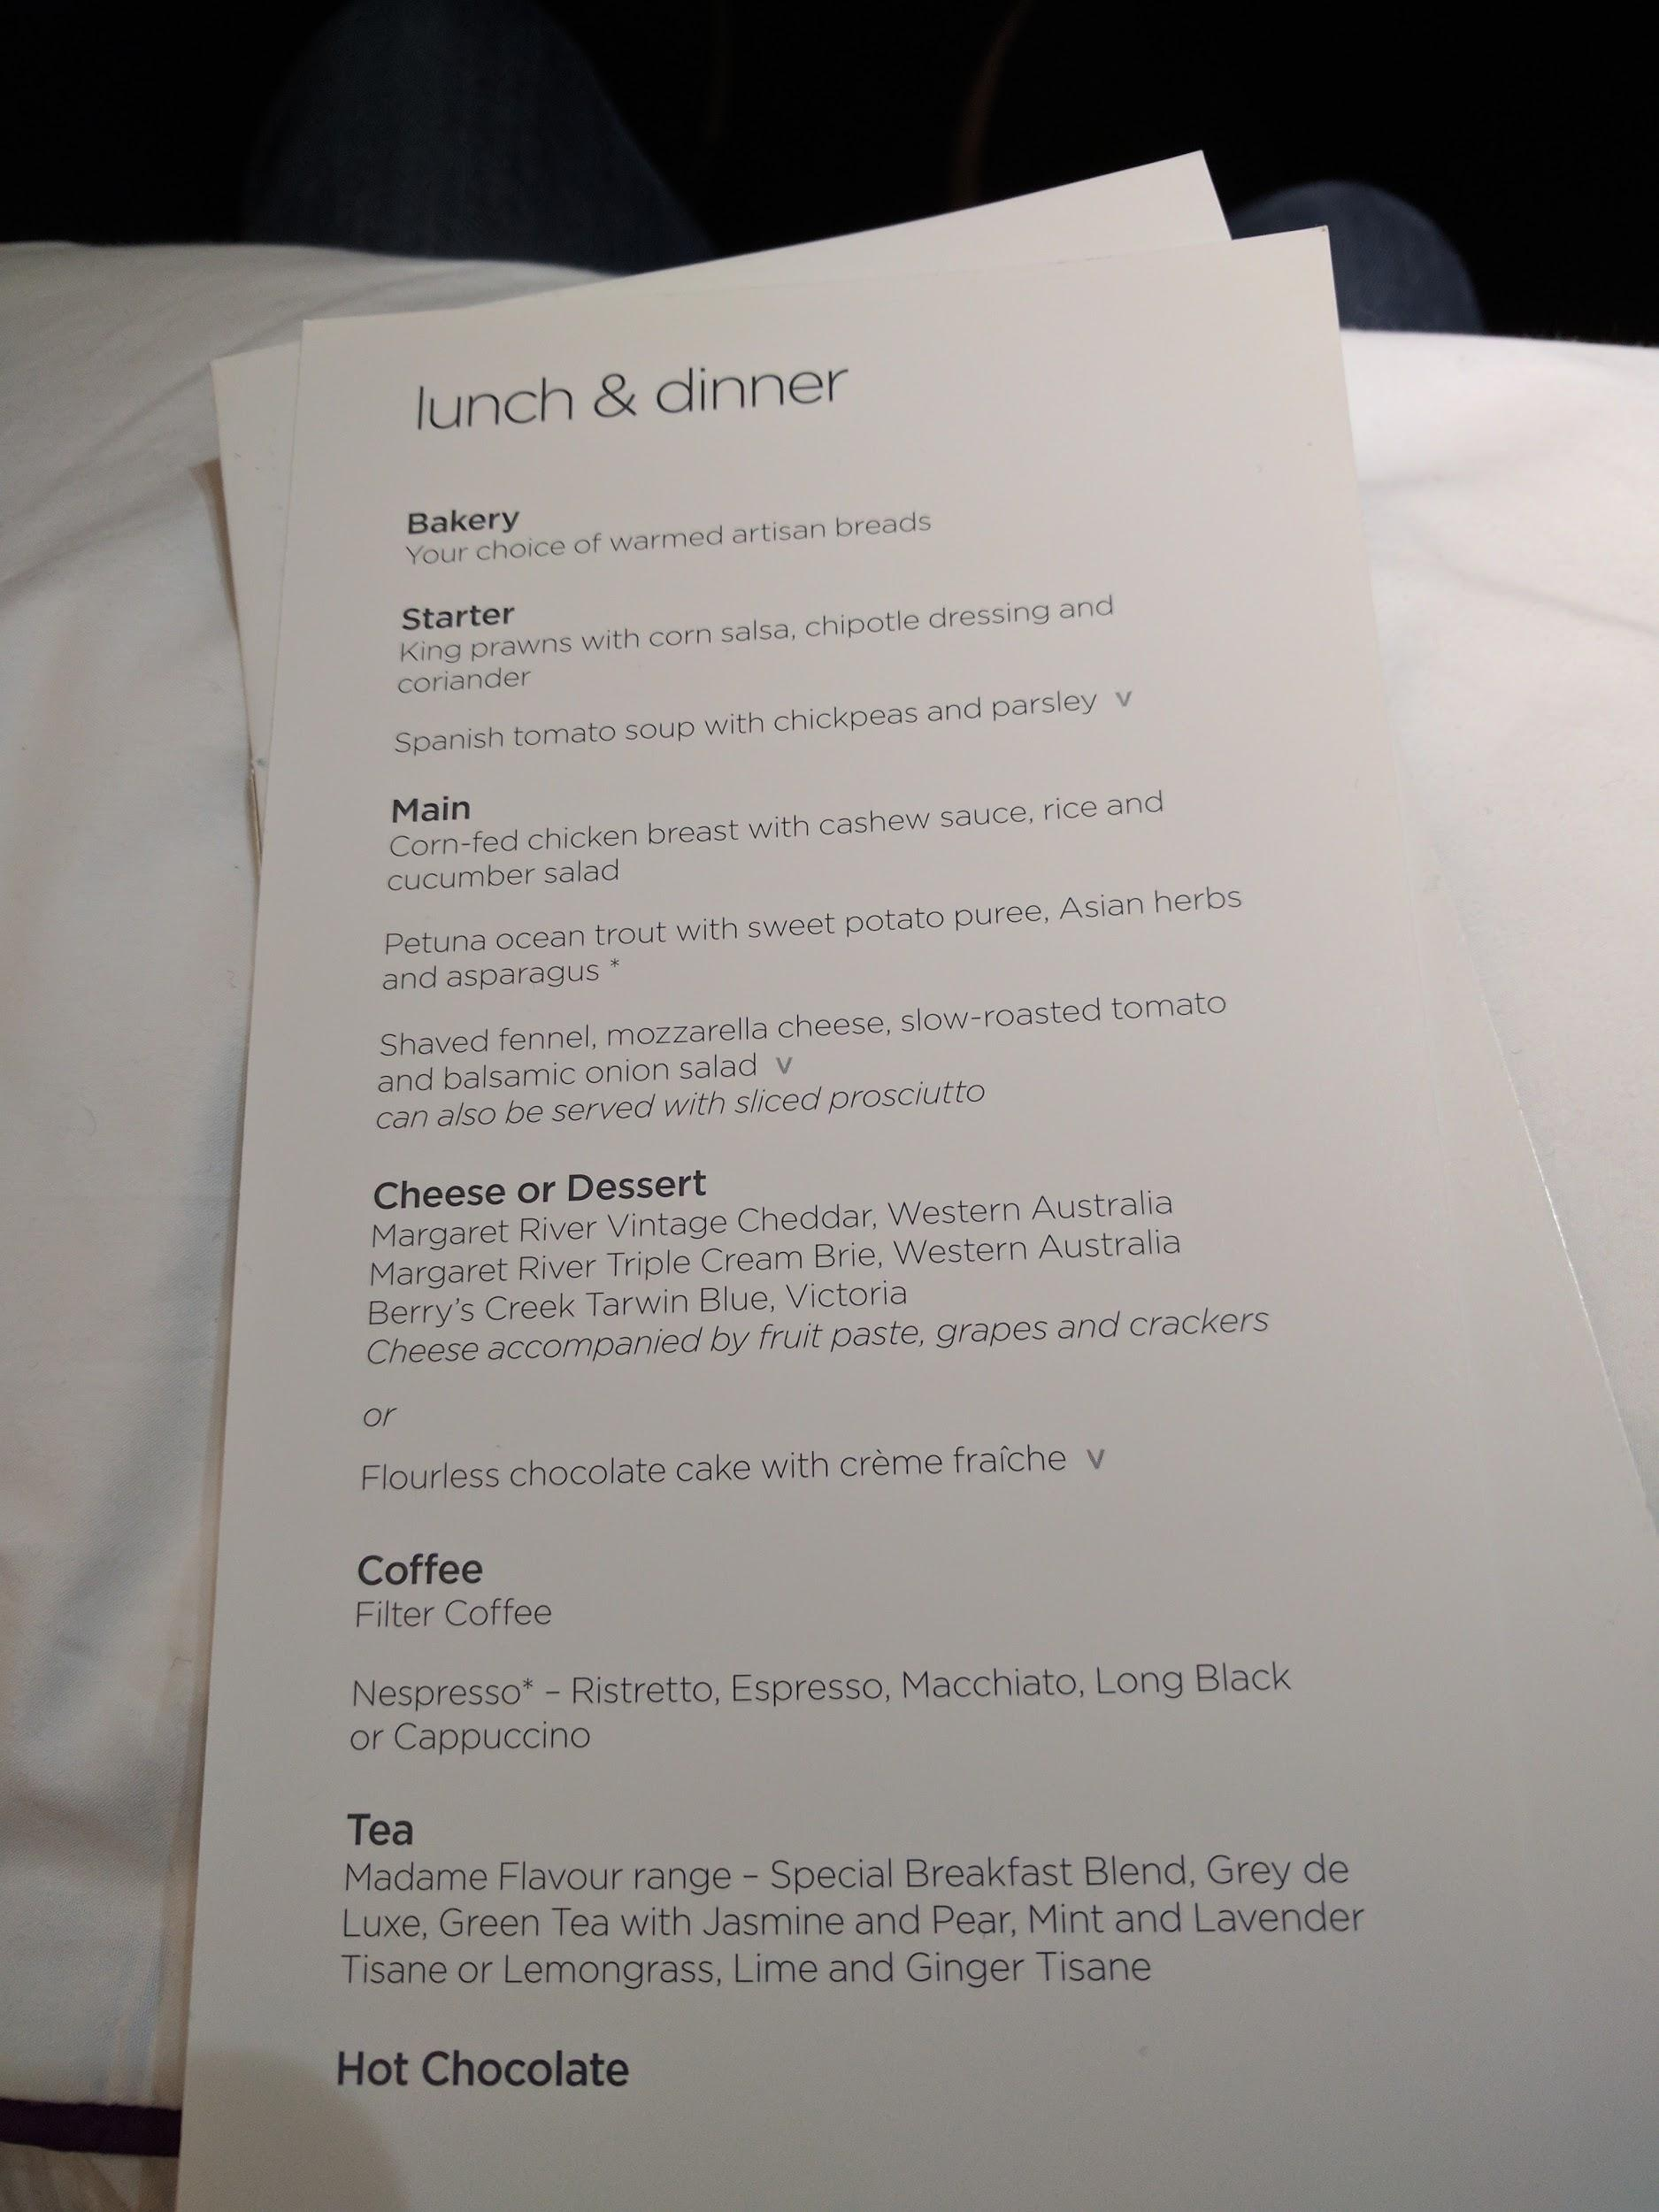 Virgin Australia sample menu